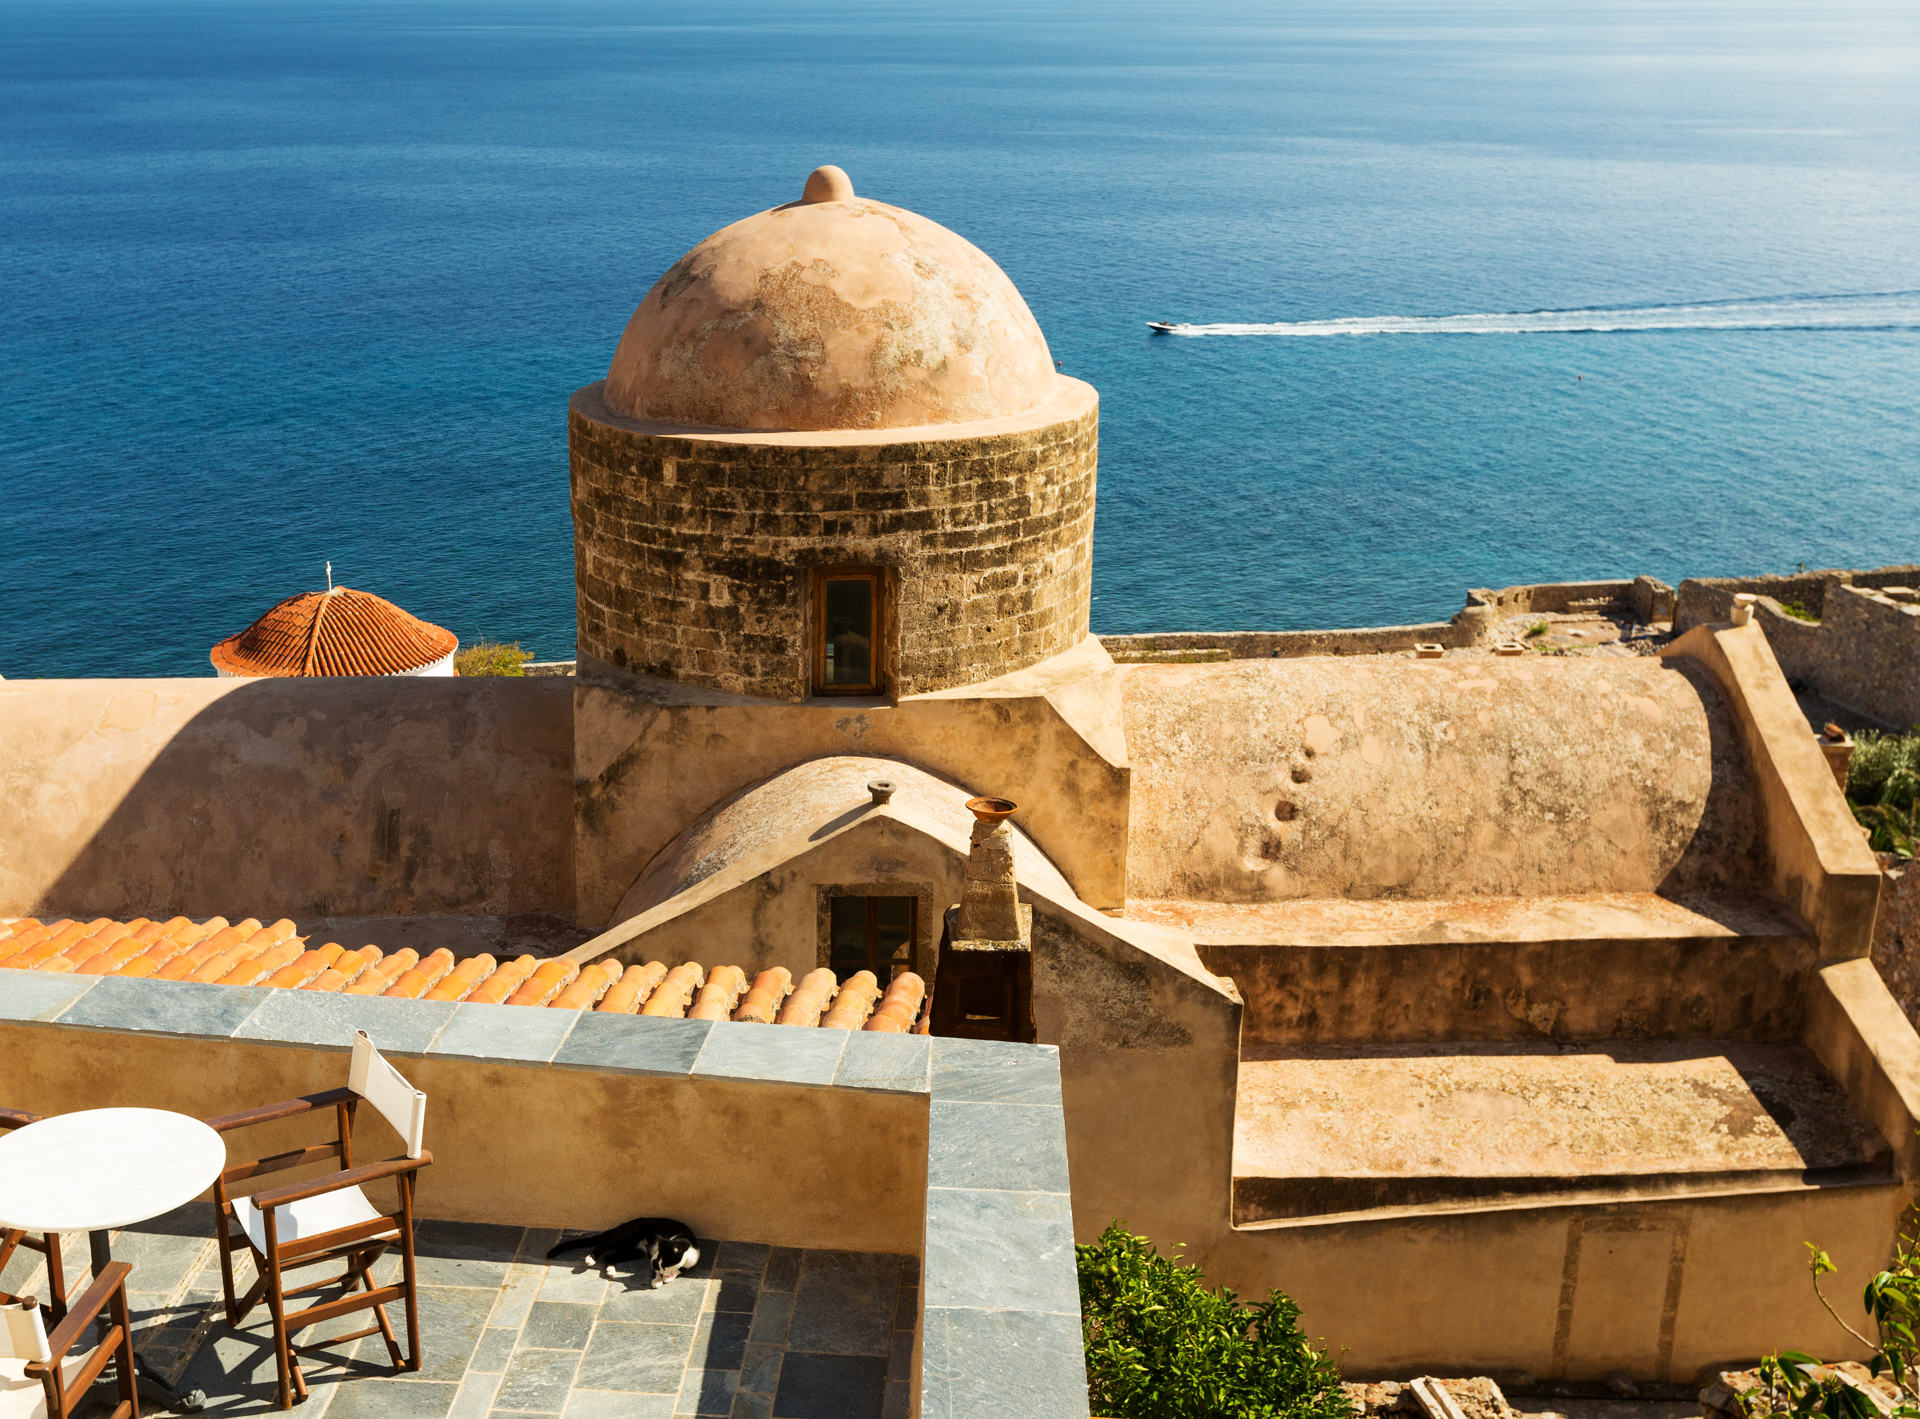 The medieval town of Monemvasia, Peloponnese, Greece